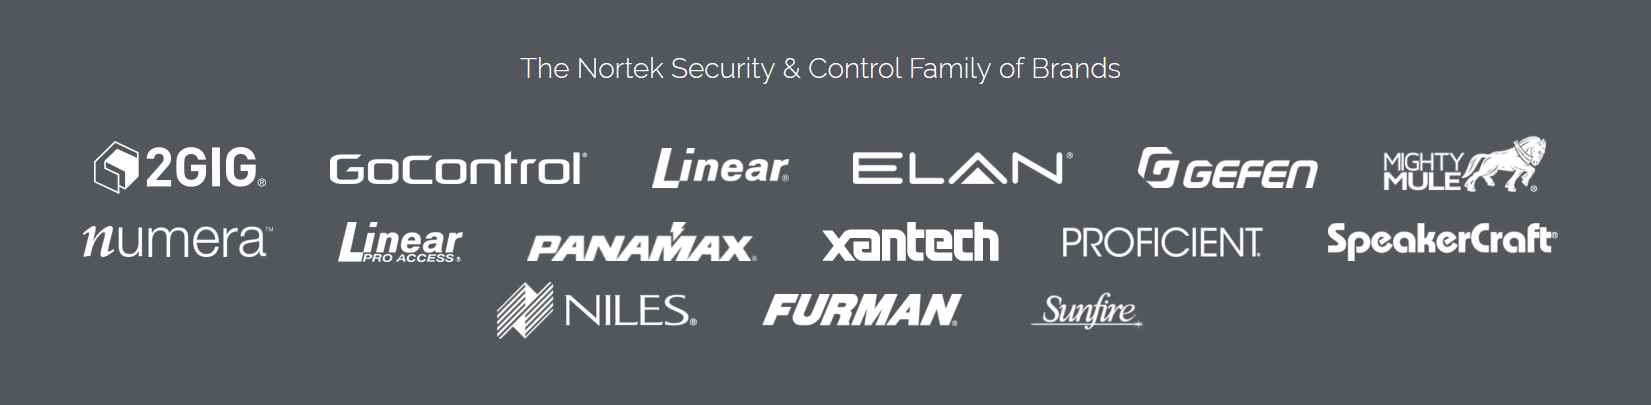 Nortek_Family